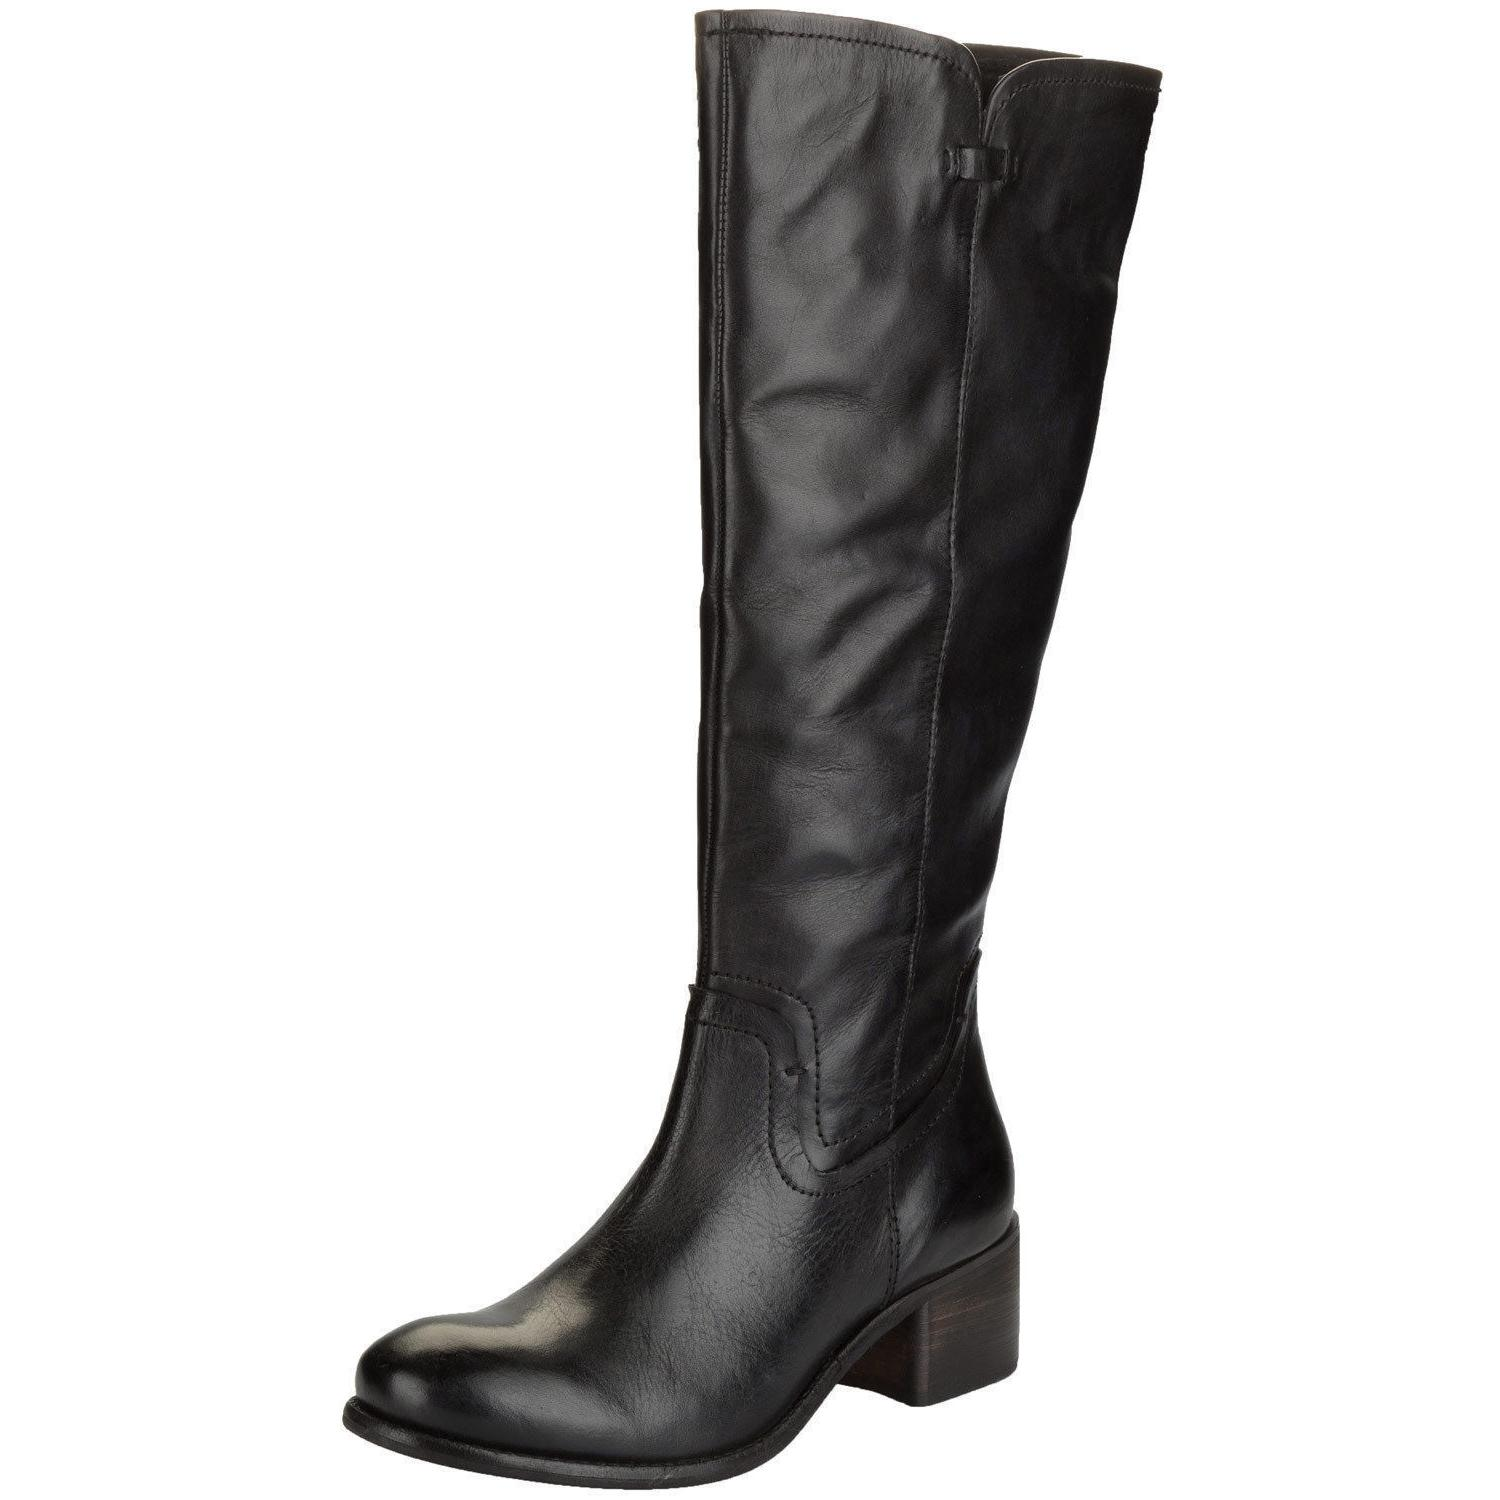 New Women's Skechers Knee High Boots Black